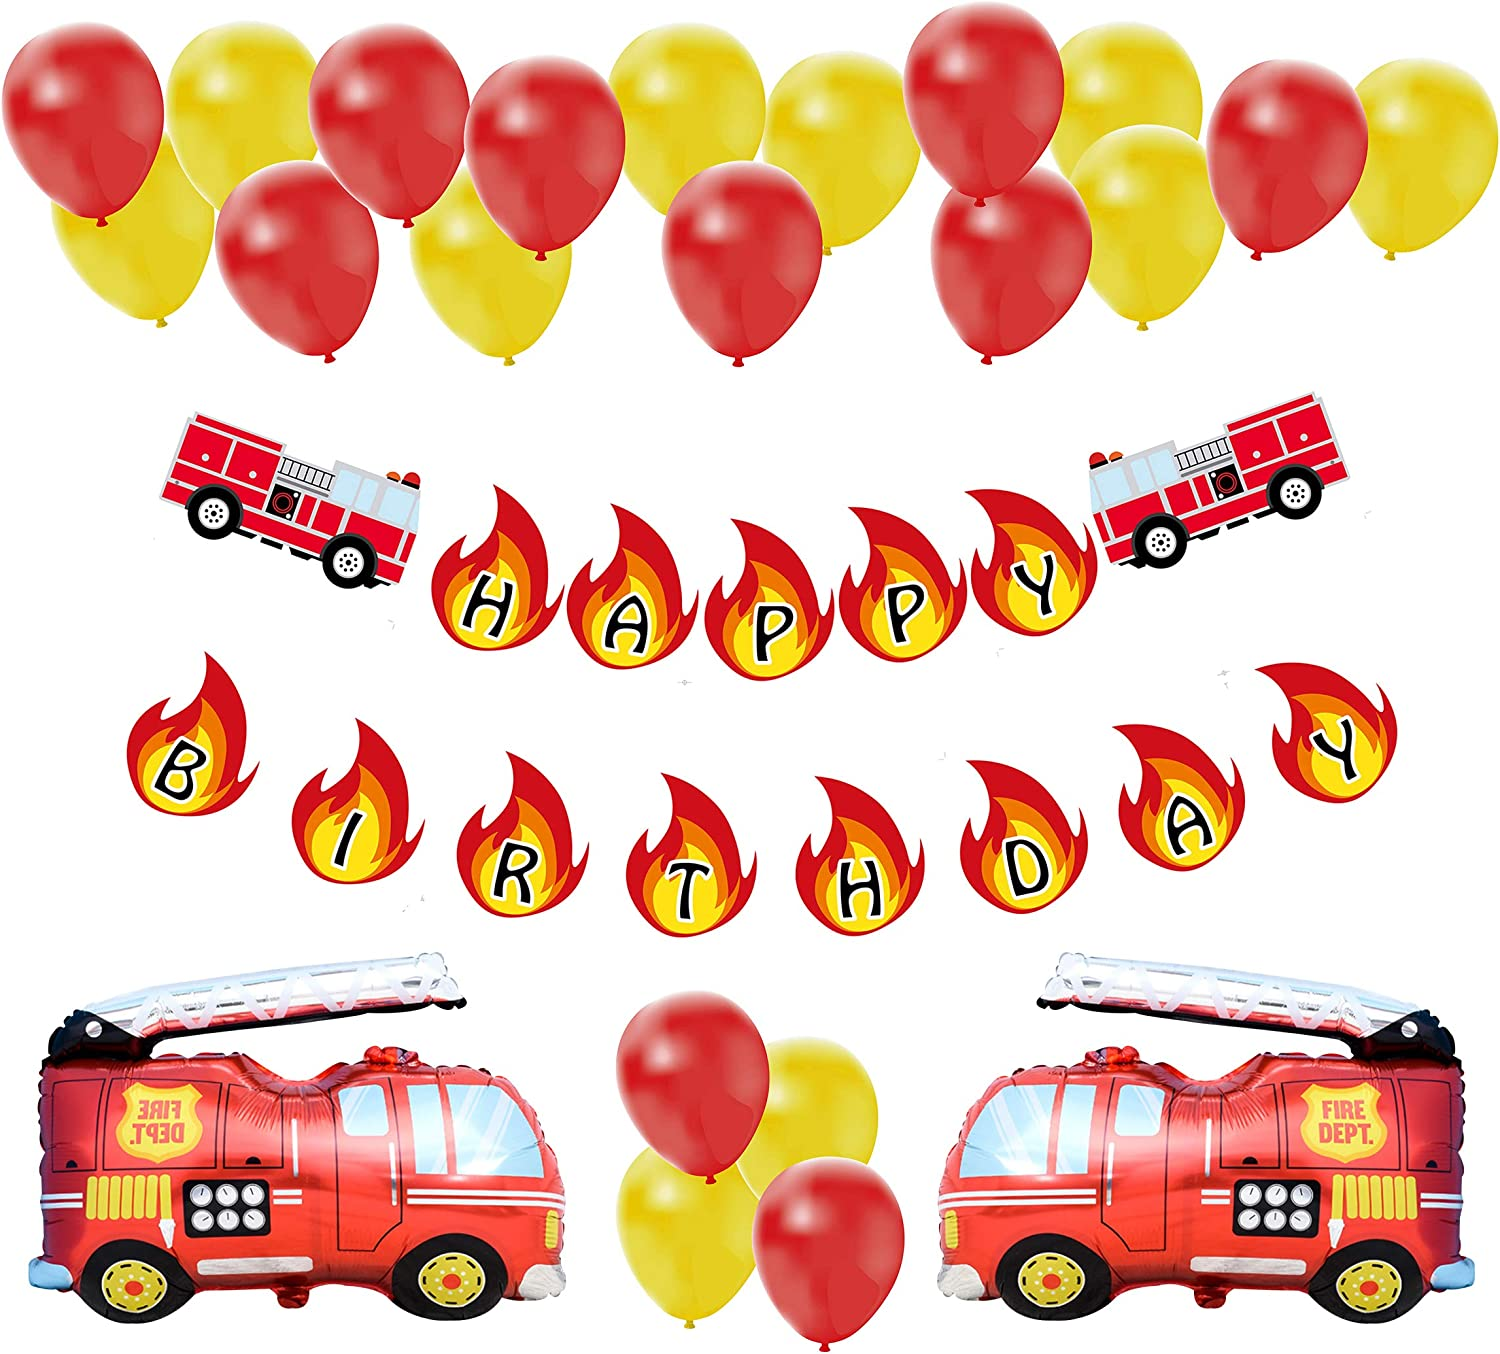 Fire Truck Birthday Party Decoration Pack | Fireman Firefighter Bday Party Banner Balloon Decor Set